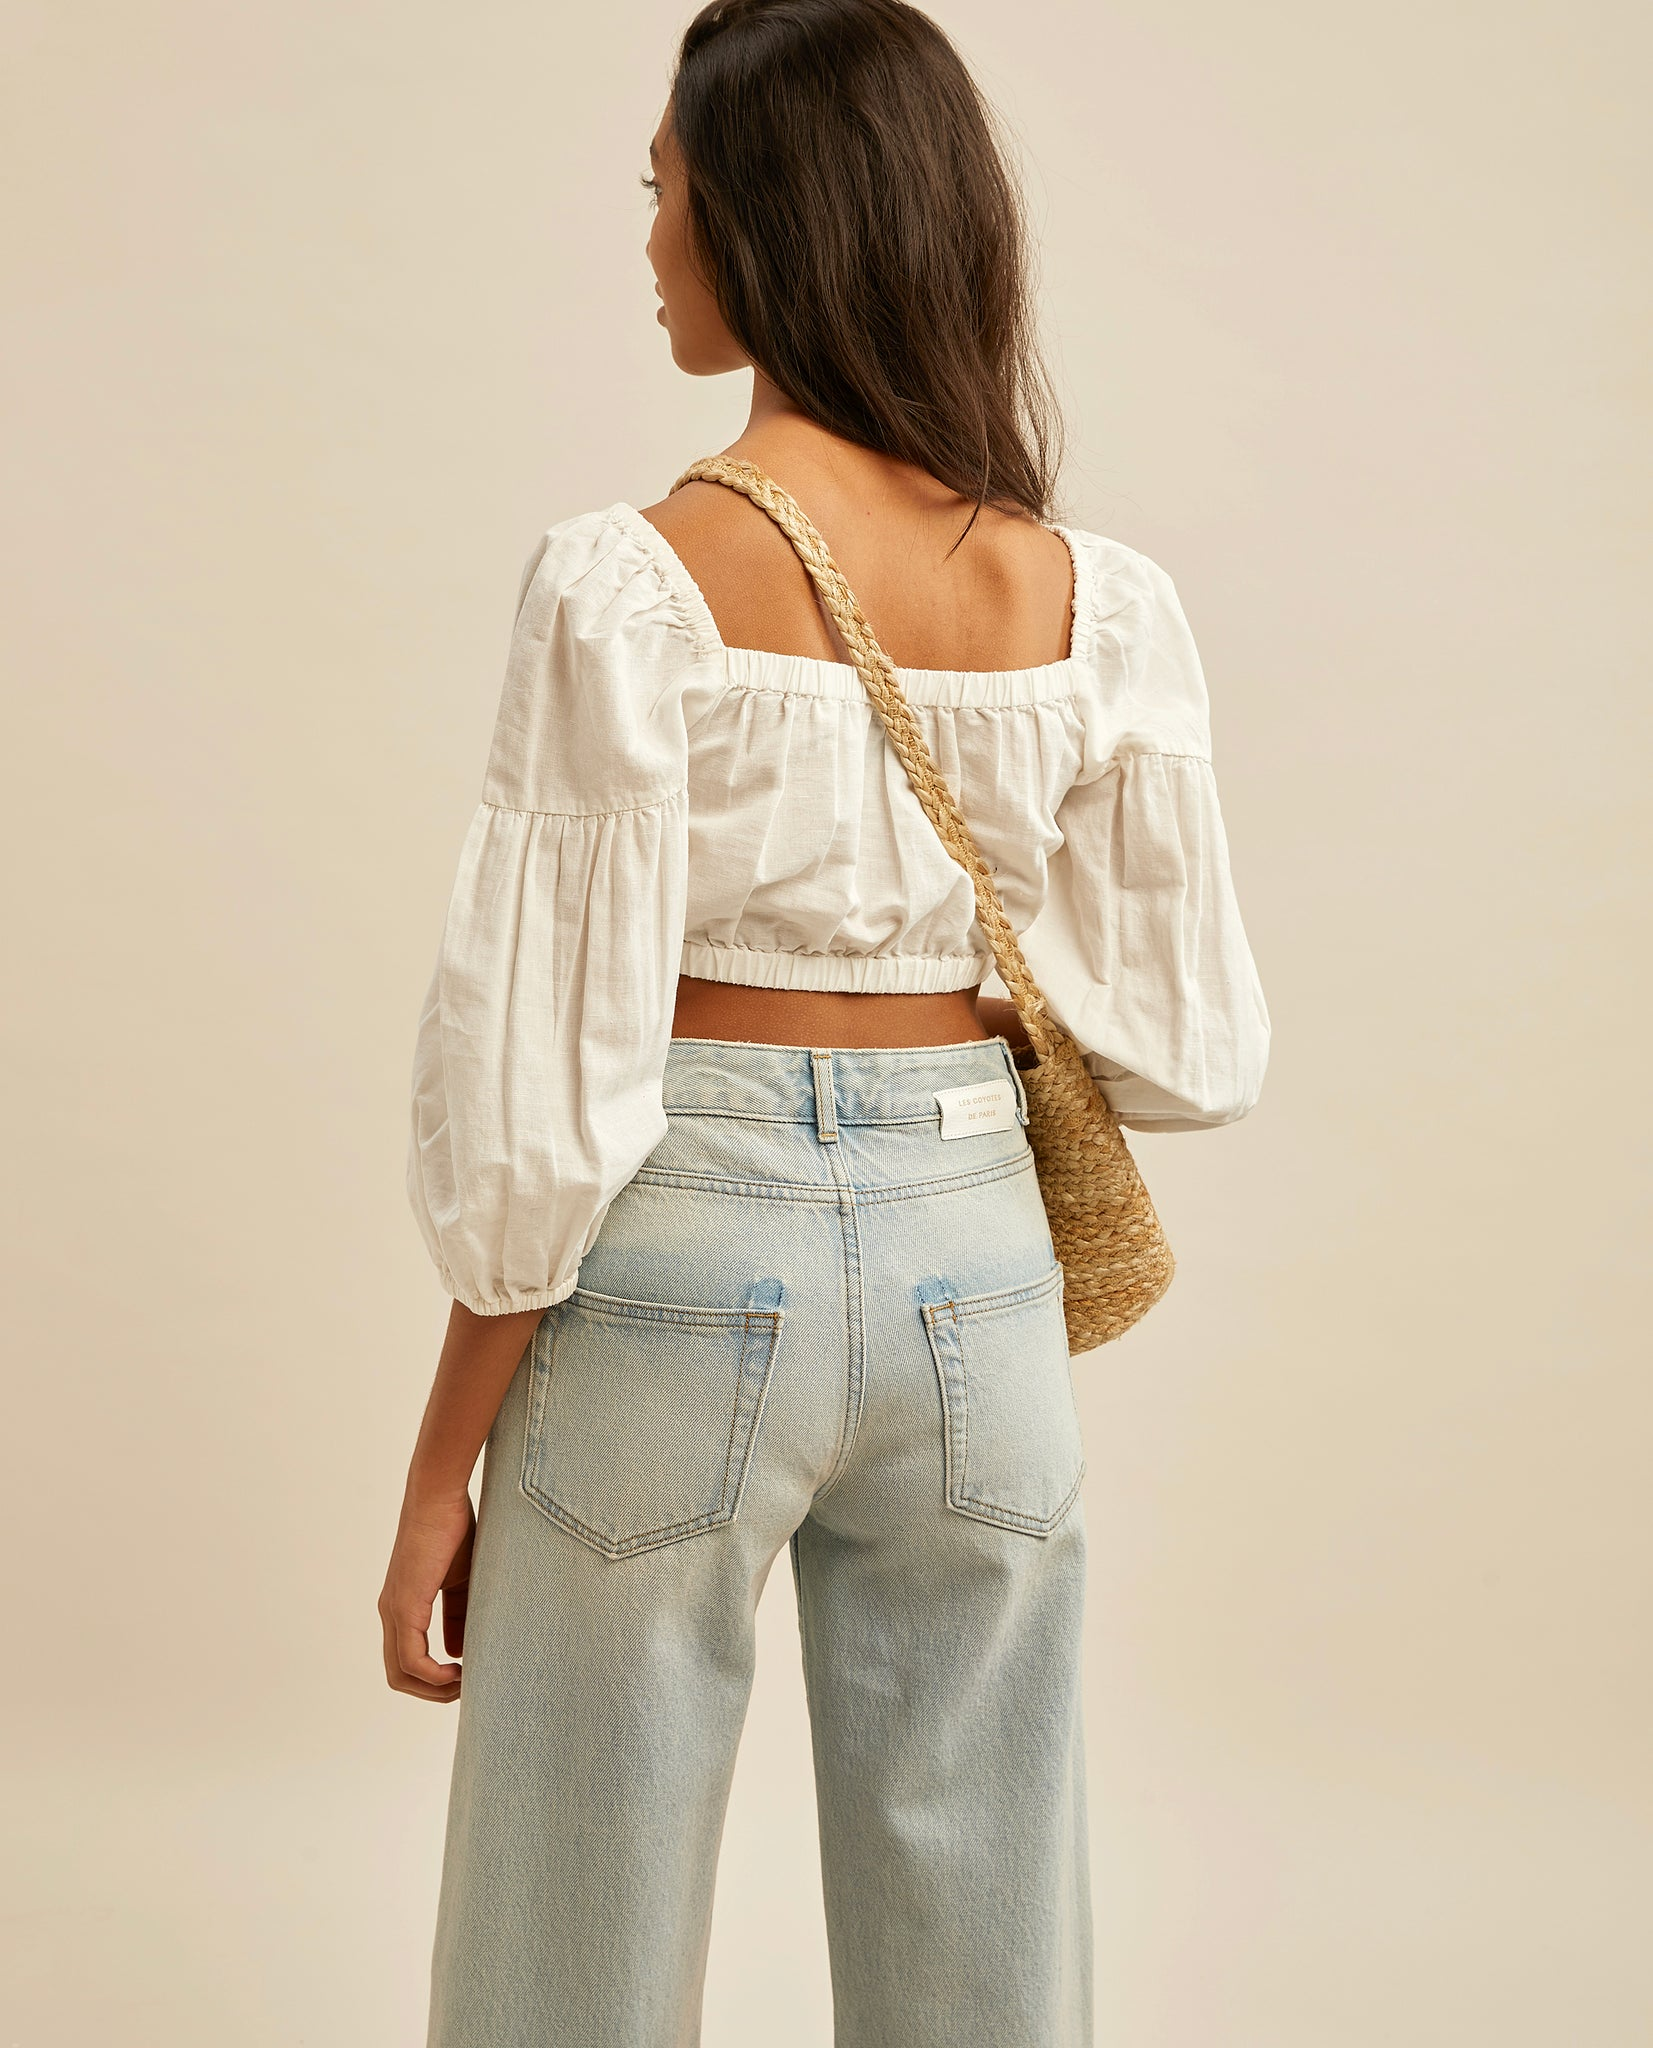 Philene crop top - White